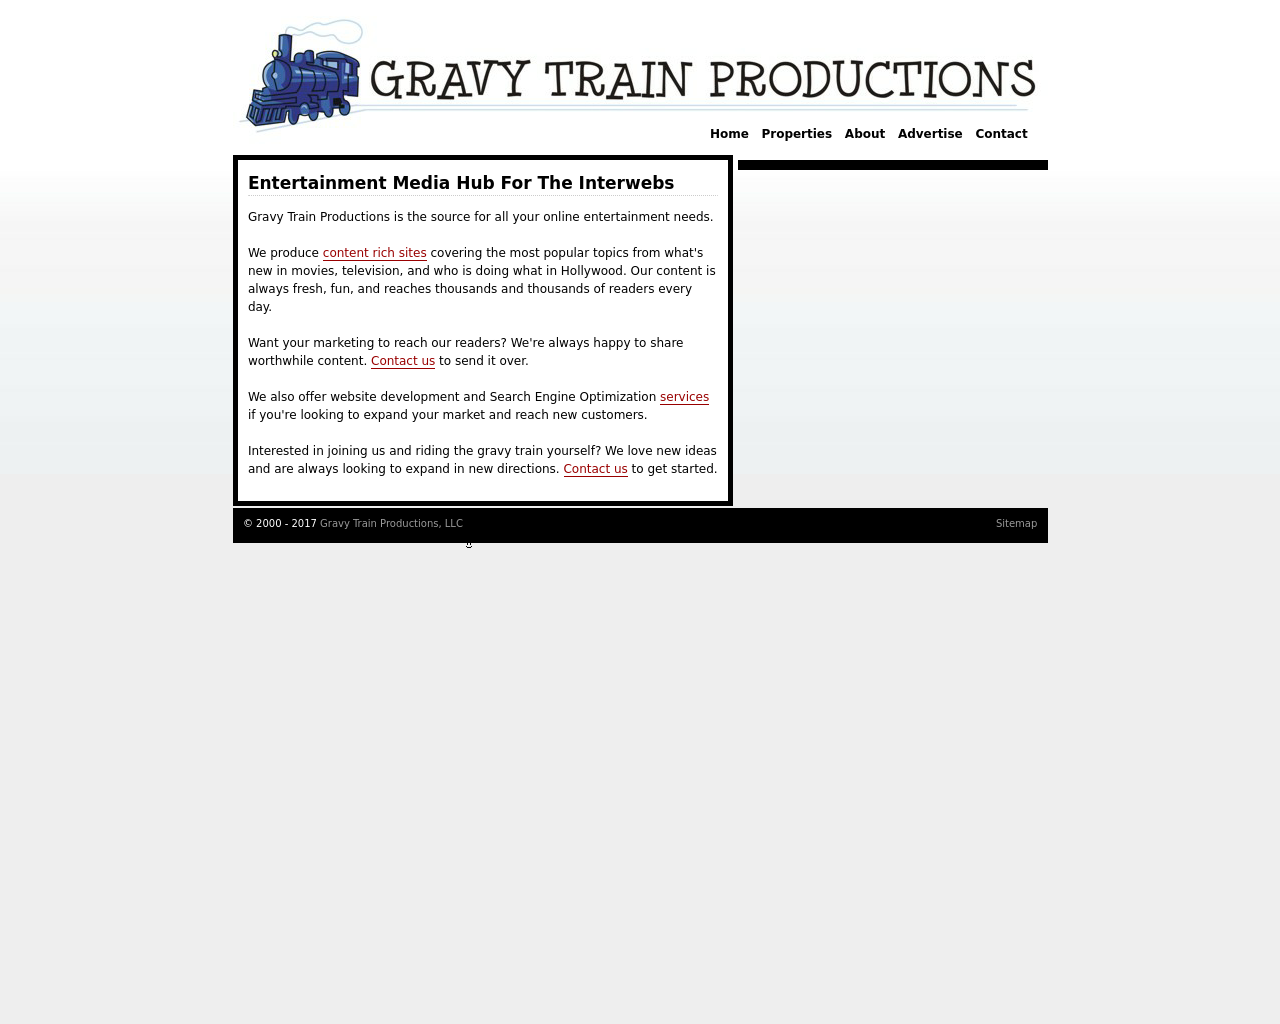 Gravy-Train-Productions-Advertising-Reviews-Pricing